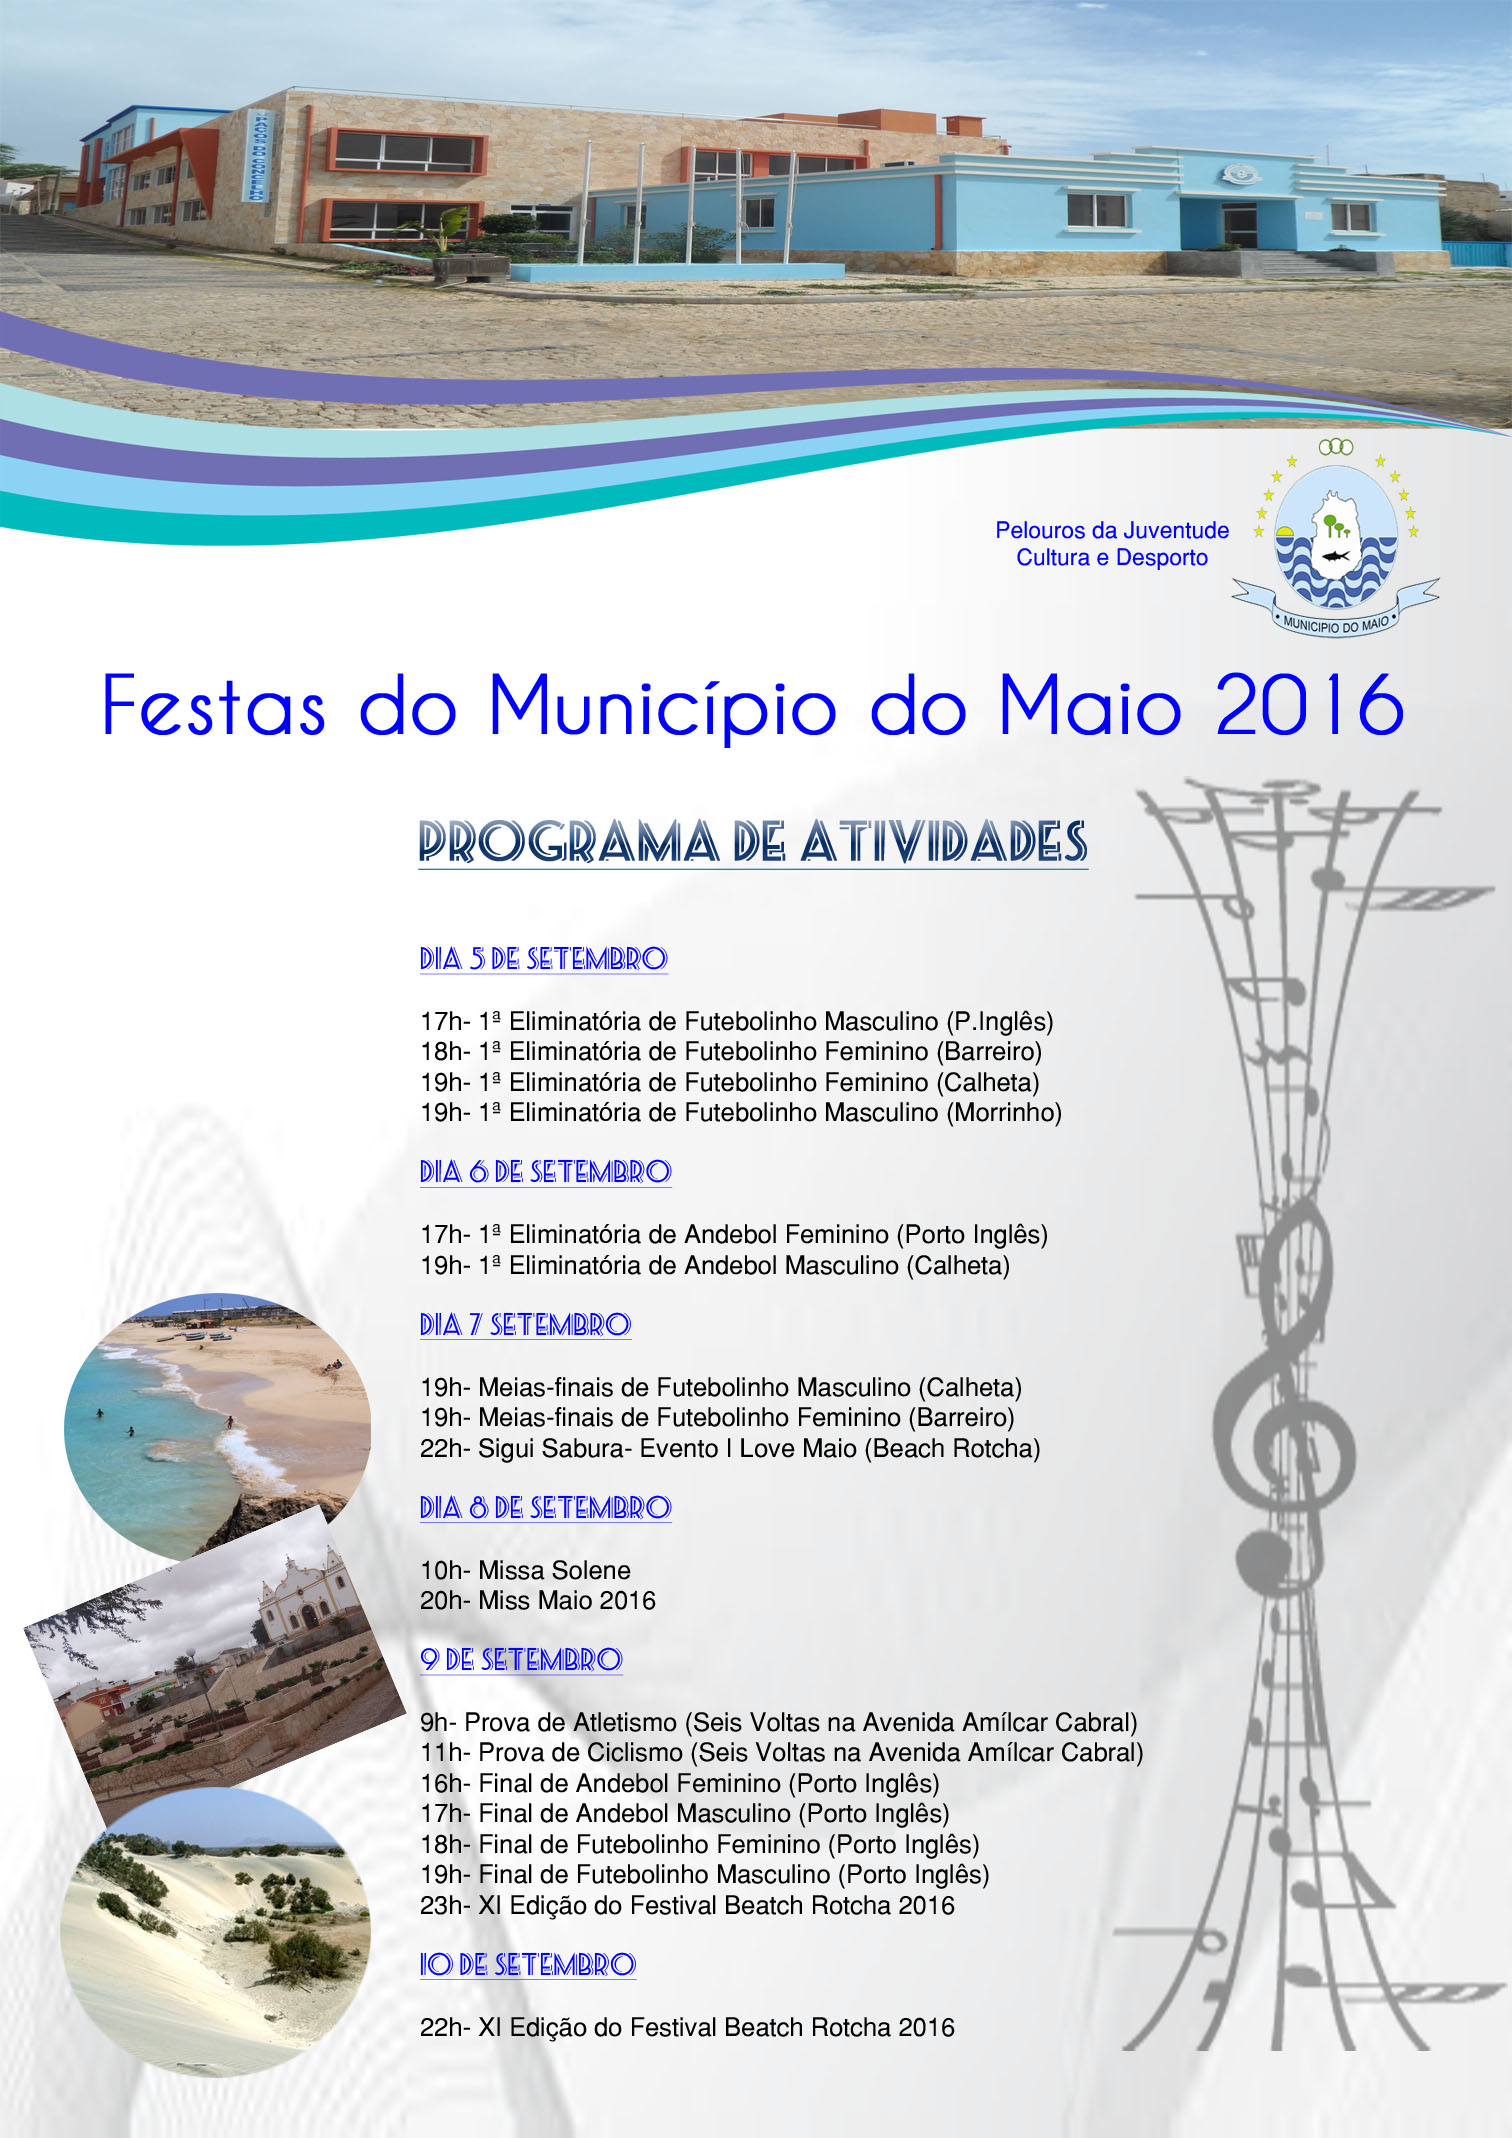 festas-do-municipio-maio-2016